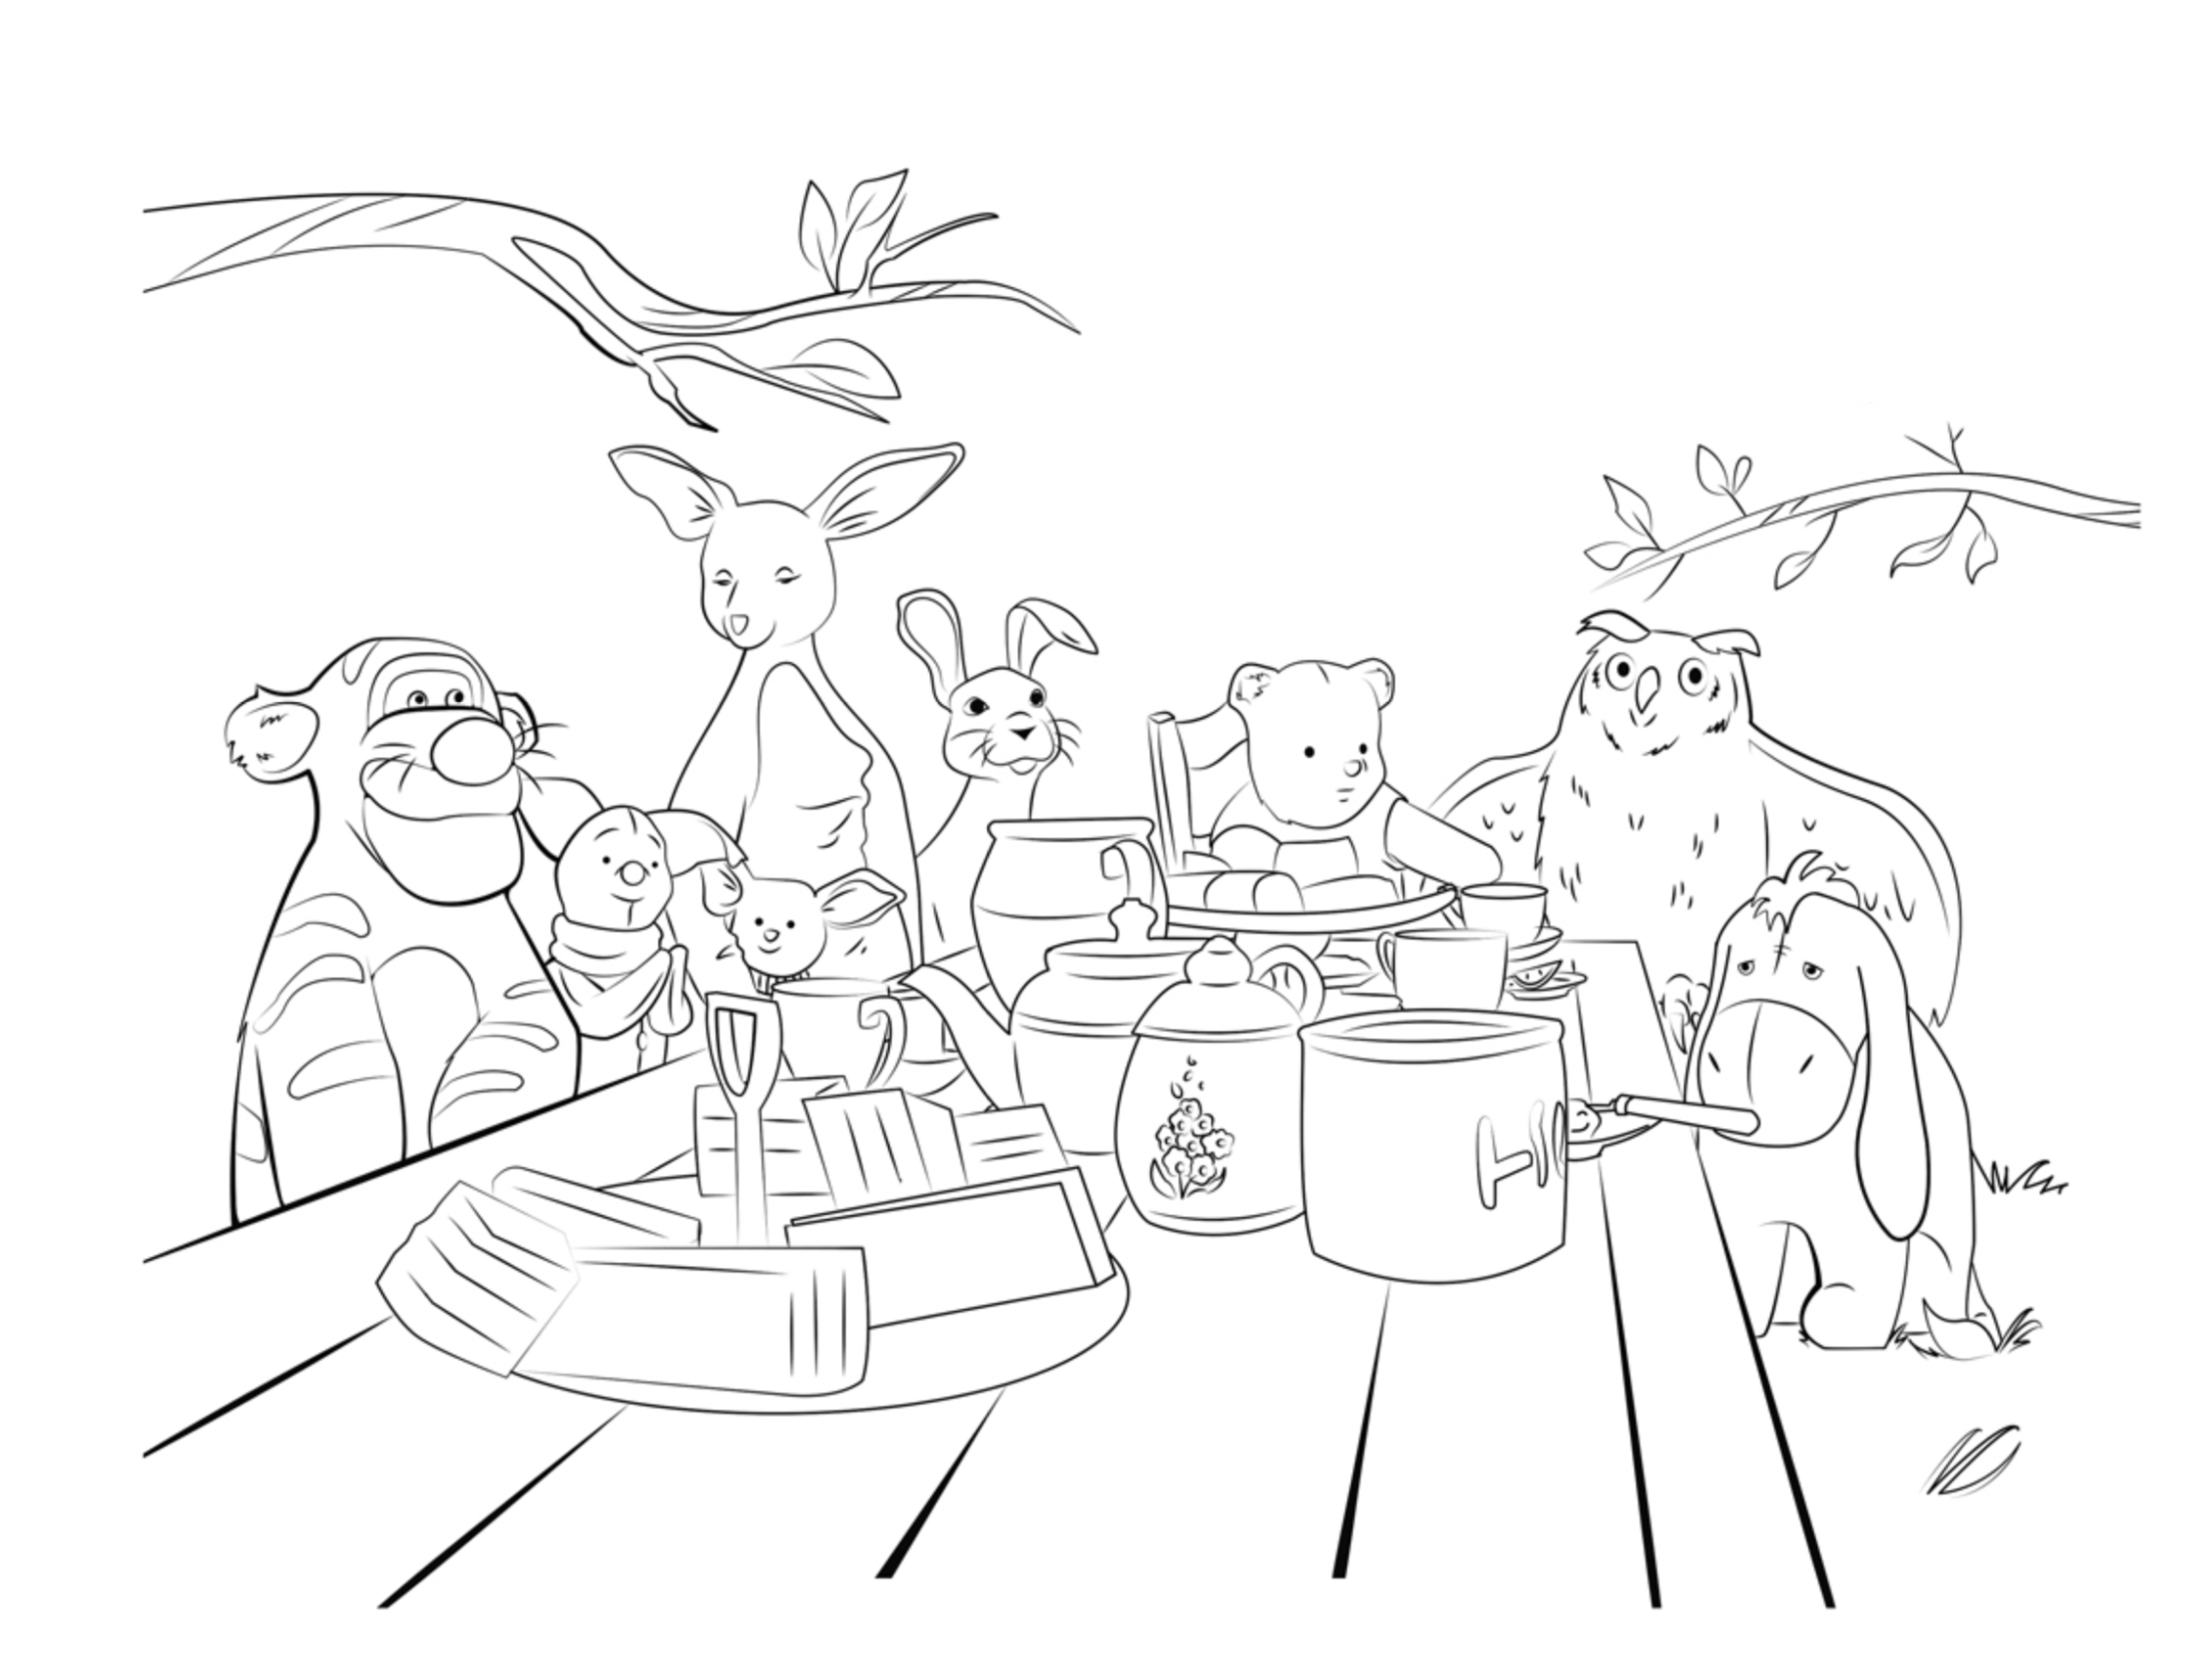 christopher robin coloring pages christopher robin coloring image search results 463199 christopher pages coloring robin